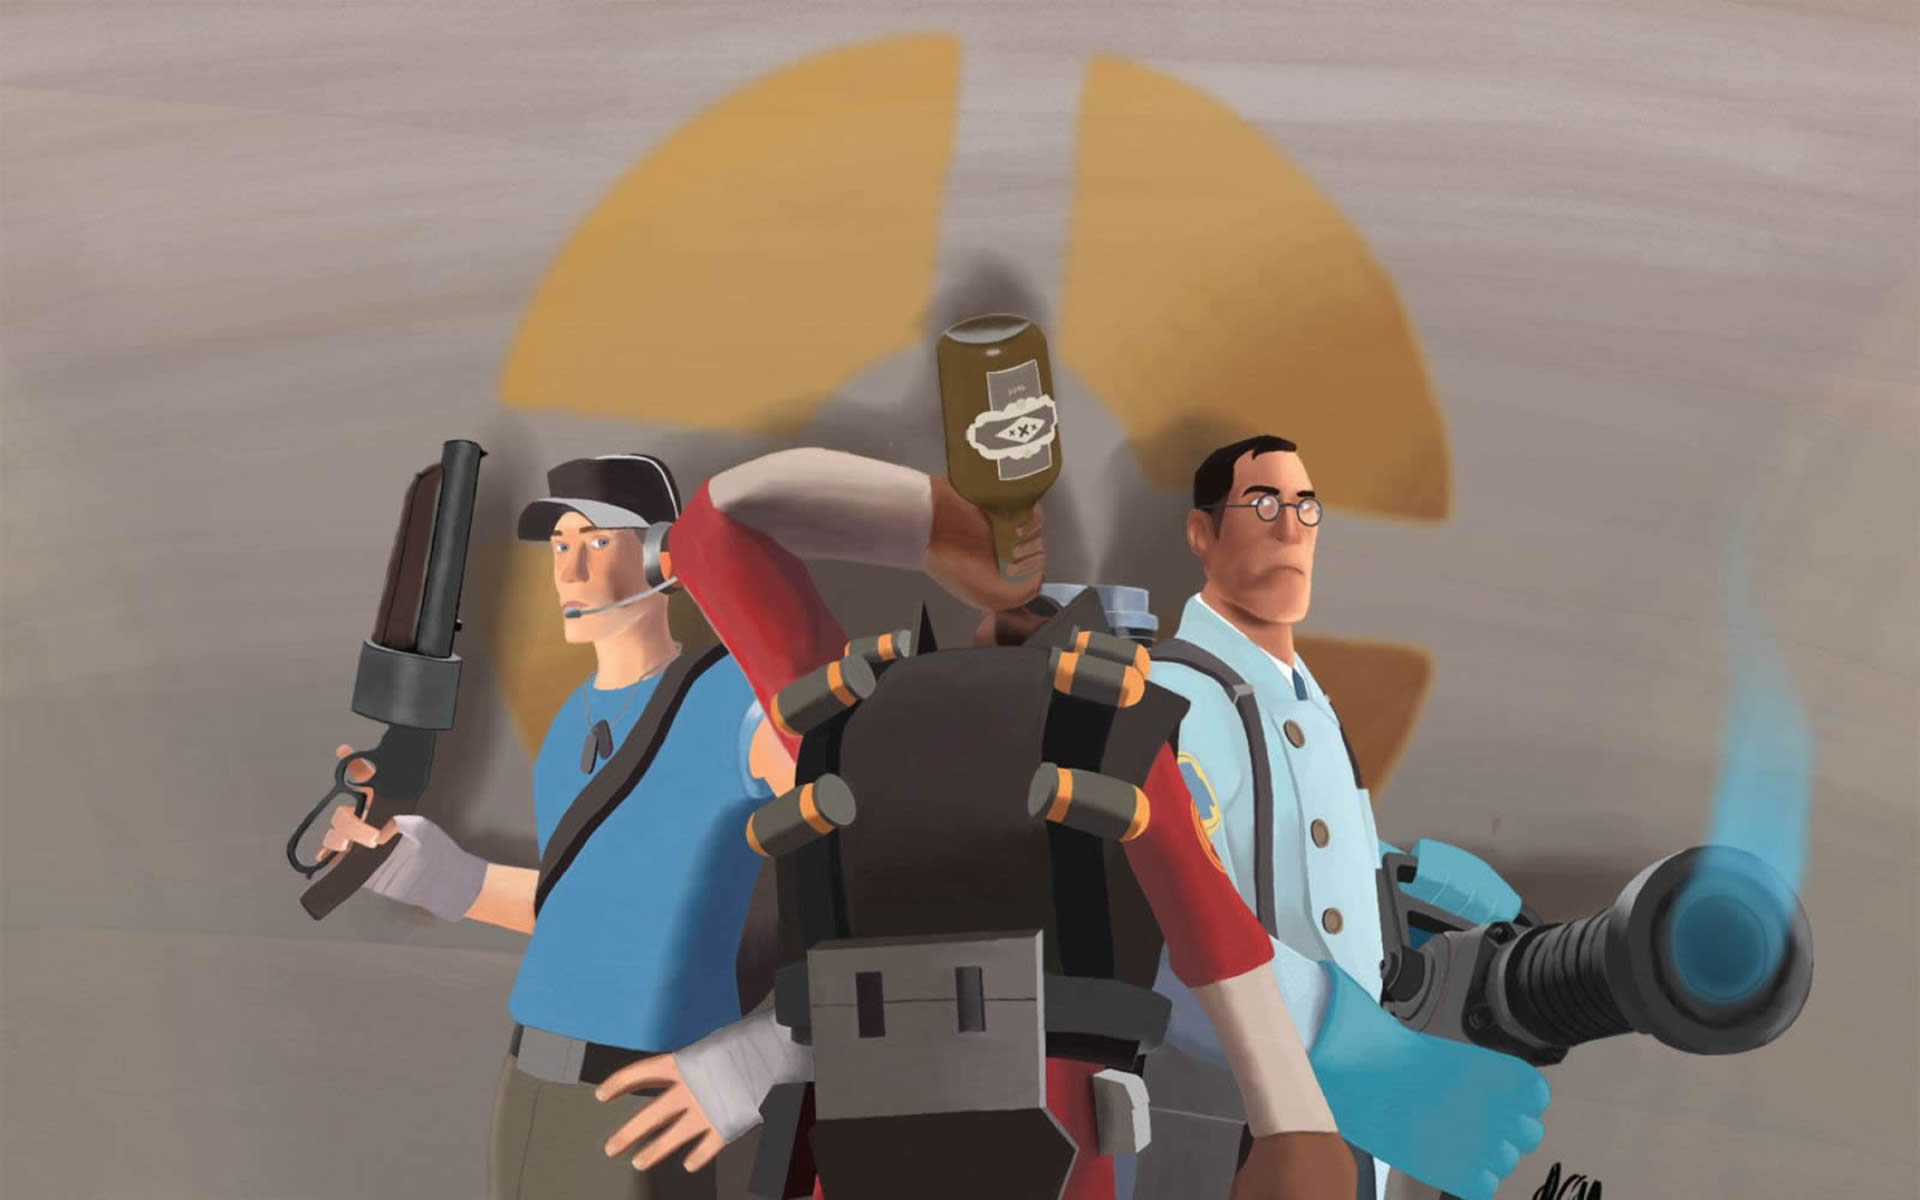 Scout Medic And Demoman Taking A Swig Of Booze